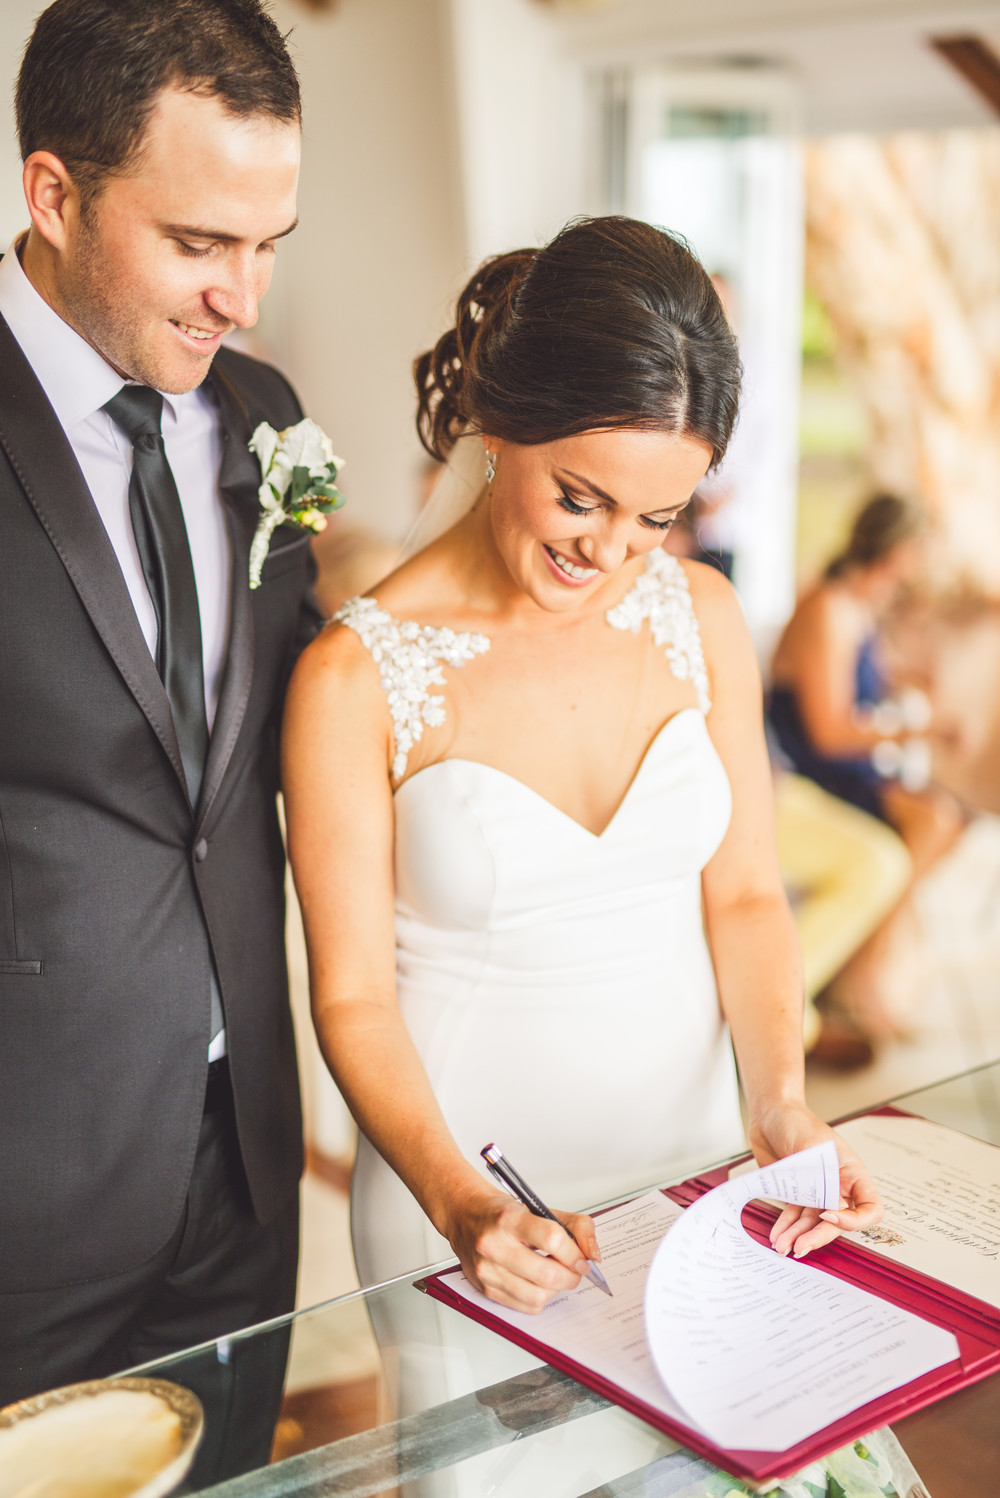 matthew-evans-photography-australian-wedding-queensland-wedding-elegant-wedding-34